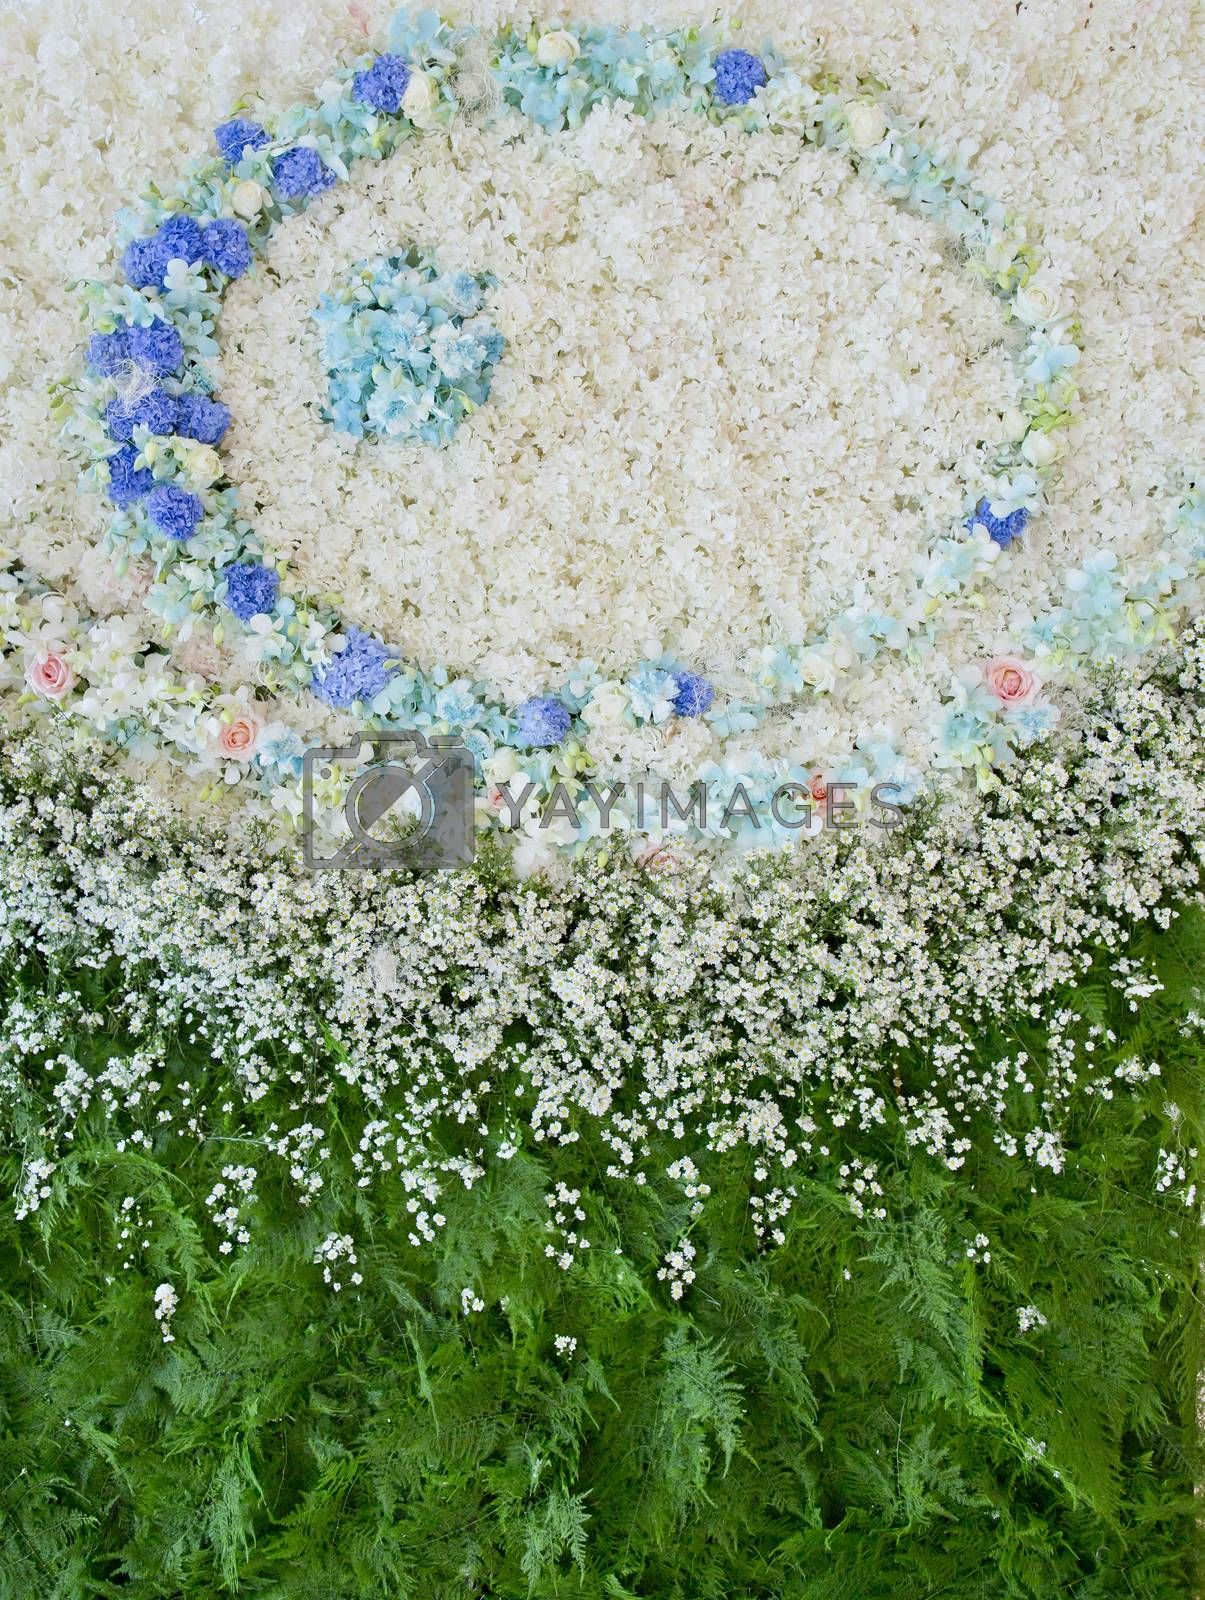 Royalty free image of Abstract background of flowers. Close-up floral wedding backdrop by art9858